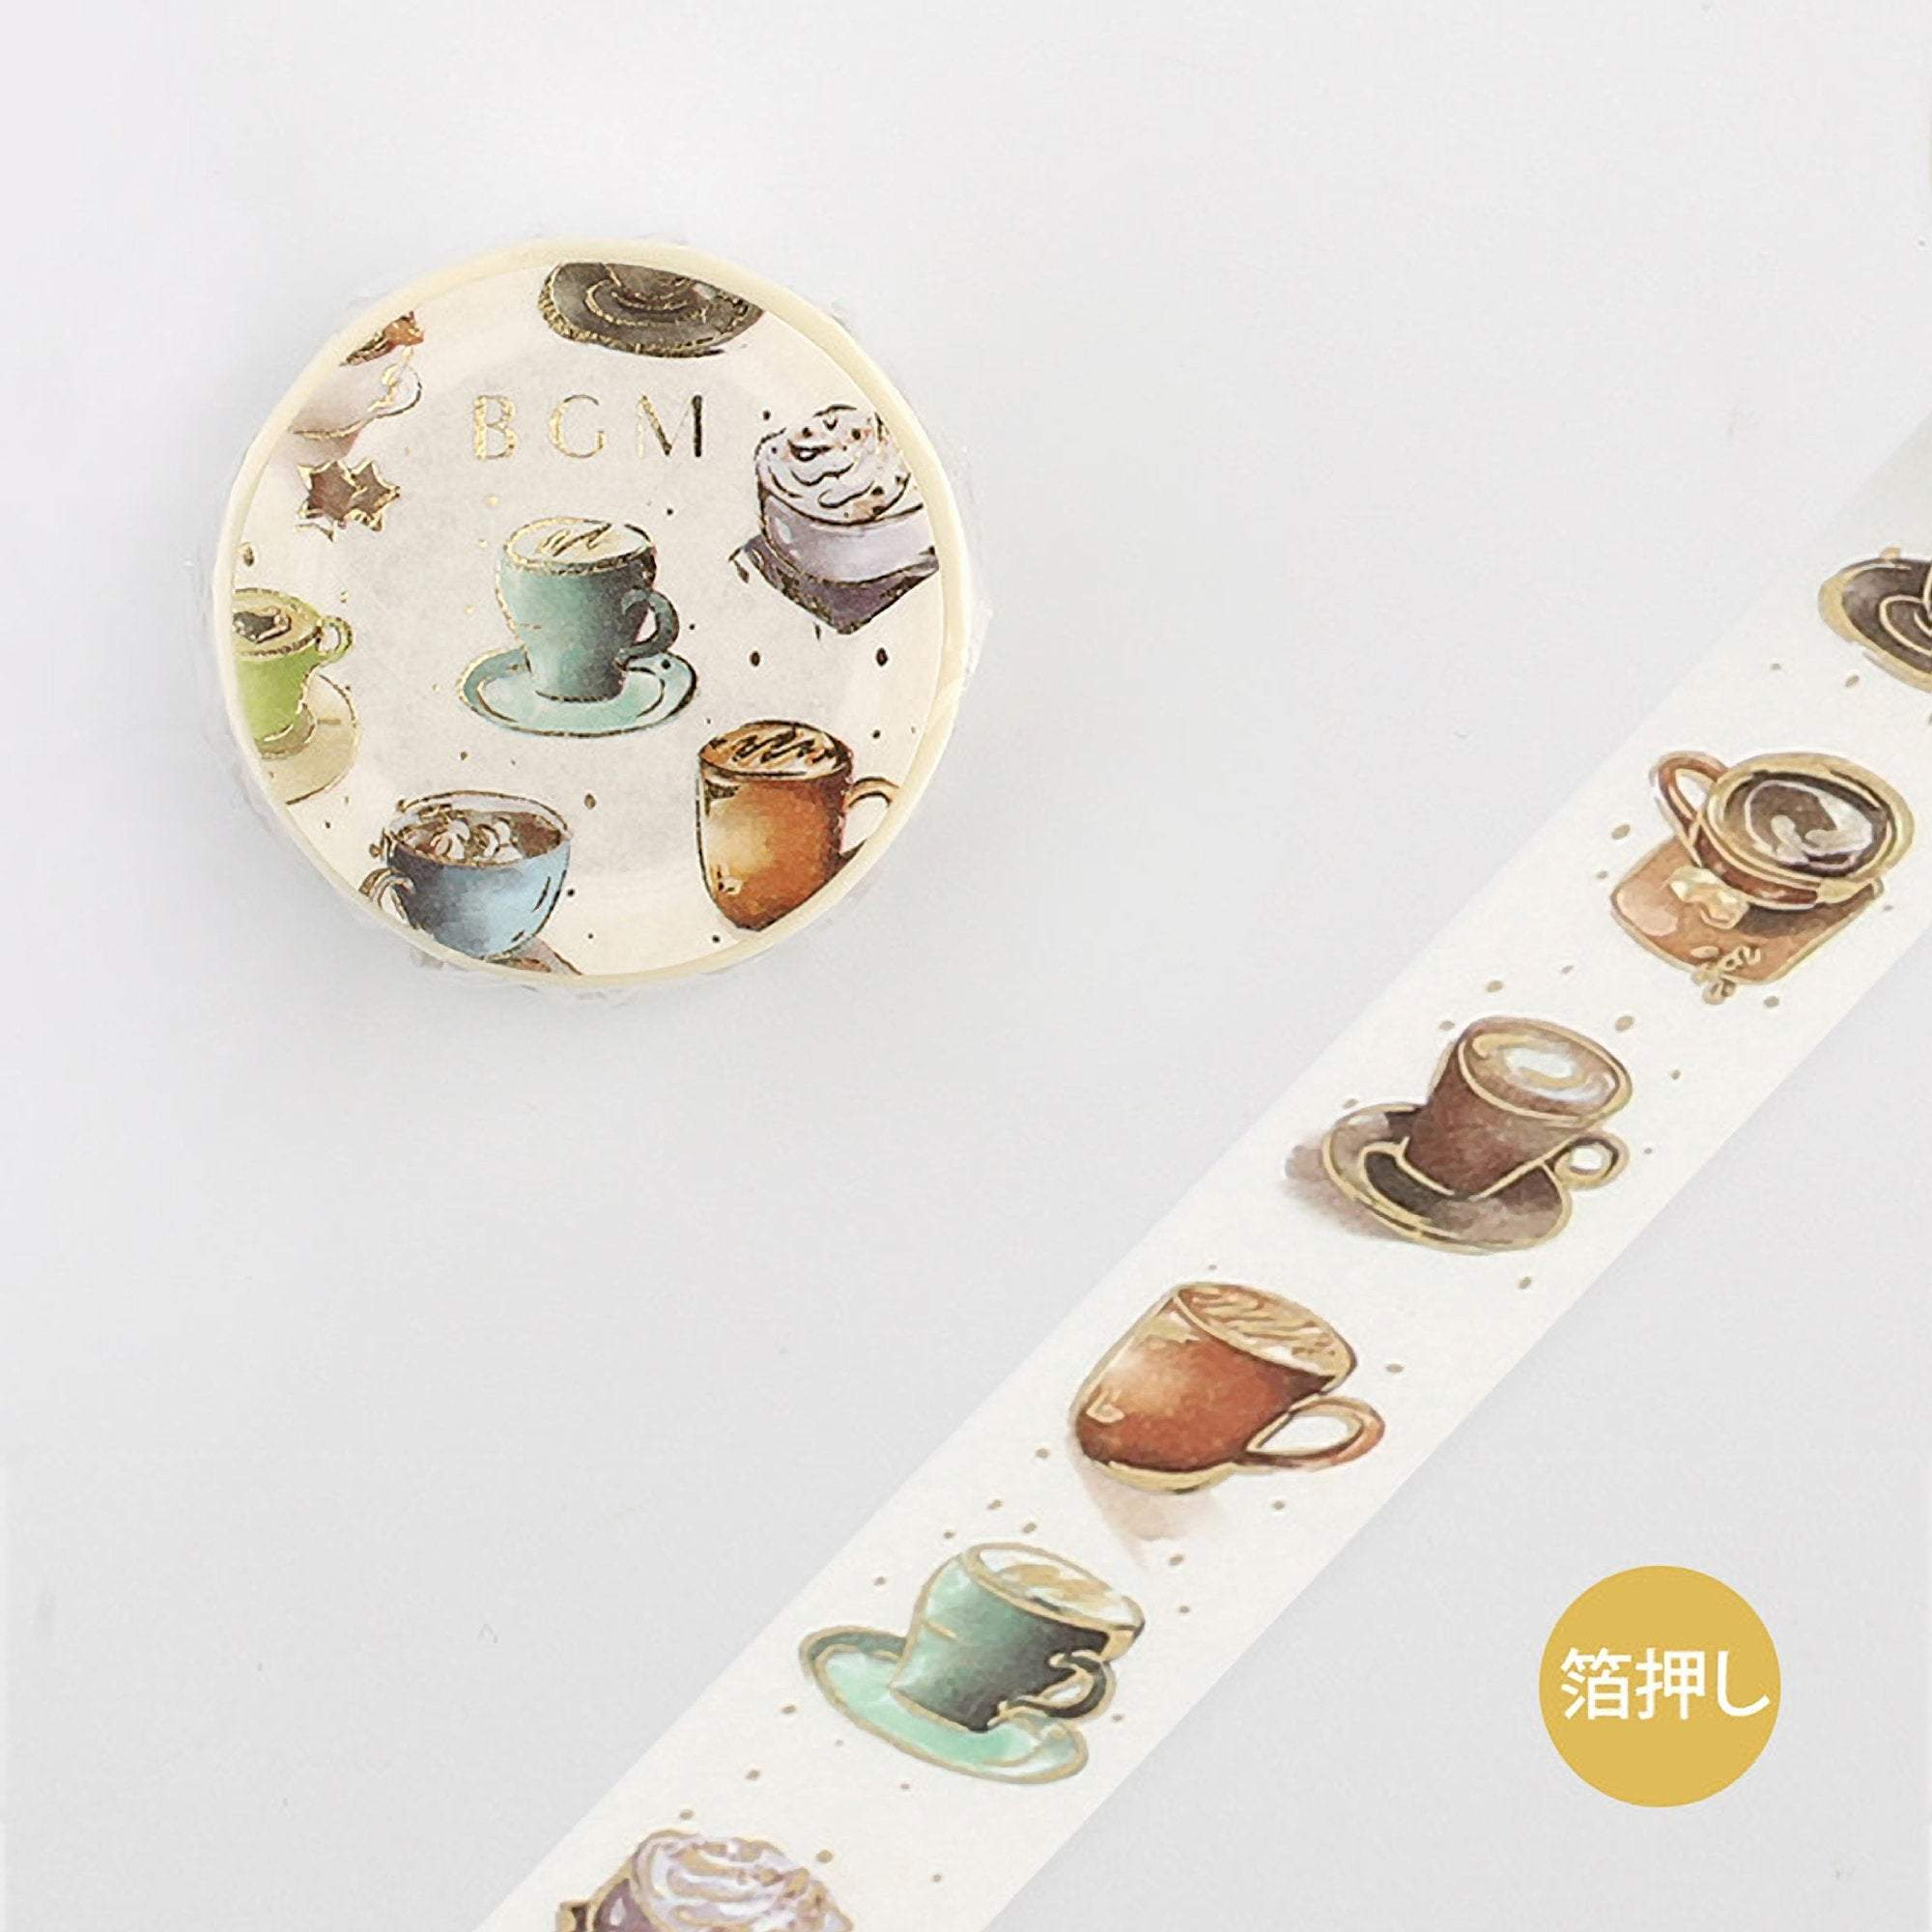 BGM Coffee Cup Coffee Mug Cappuccino Gold Foil Washi Tape - The Stationery Life!